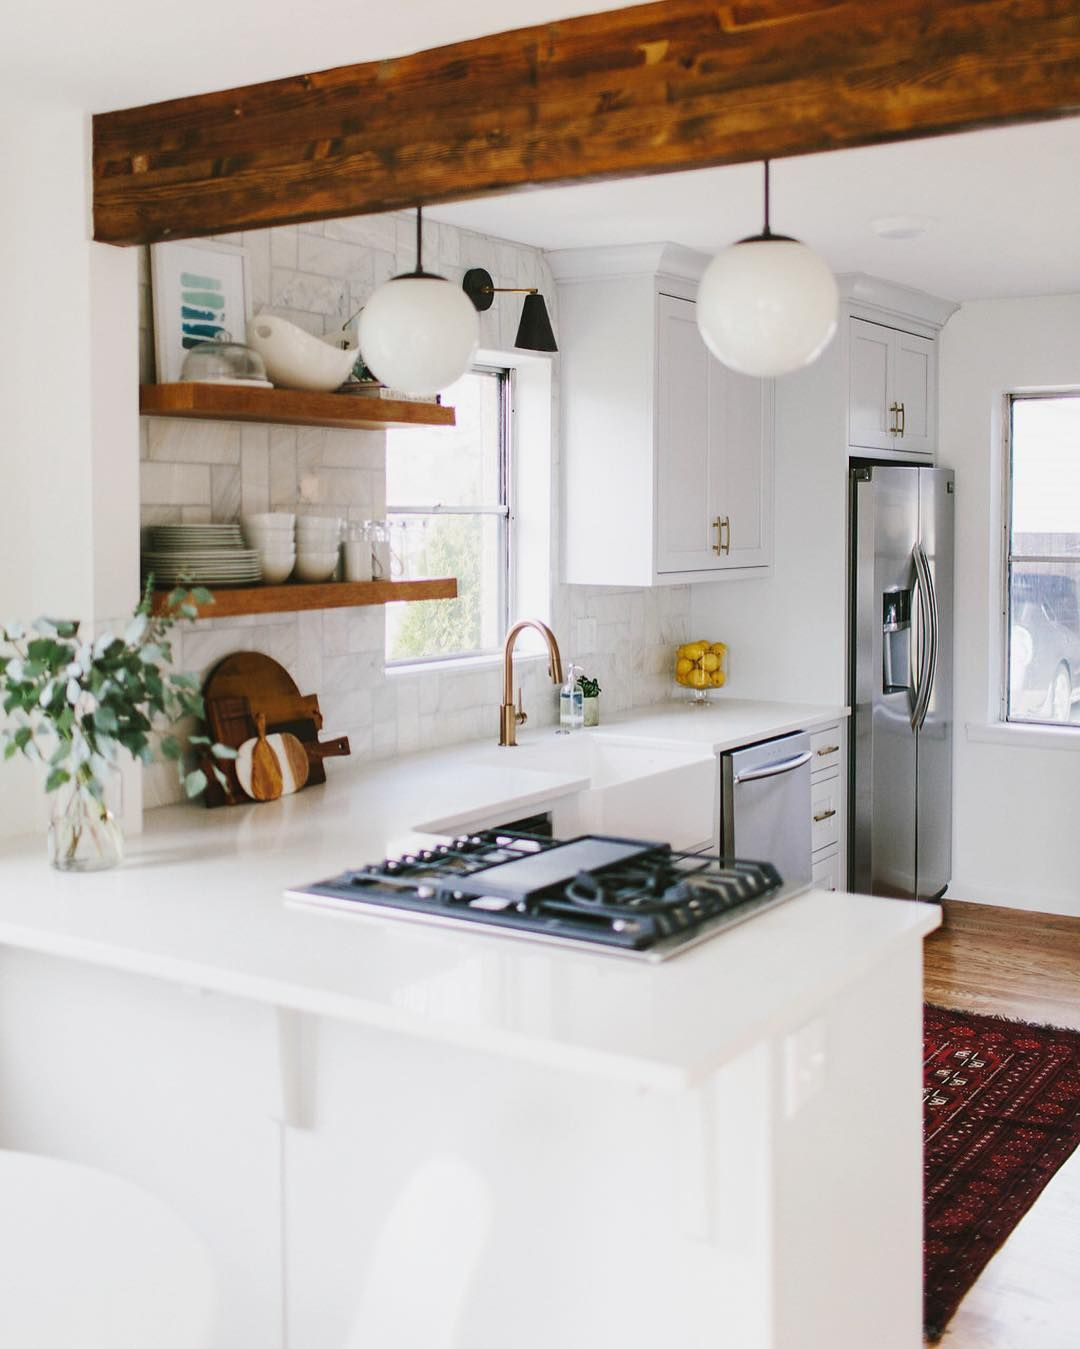 contemporary kitchen office nyc. After Being Away In NYC For A Month It Is So Nice To Be Home. This An Older Photo Of Our Kitchen Since Currently Mess..because I Decided Contemporary Office Nyc